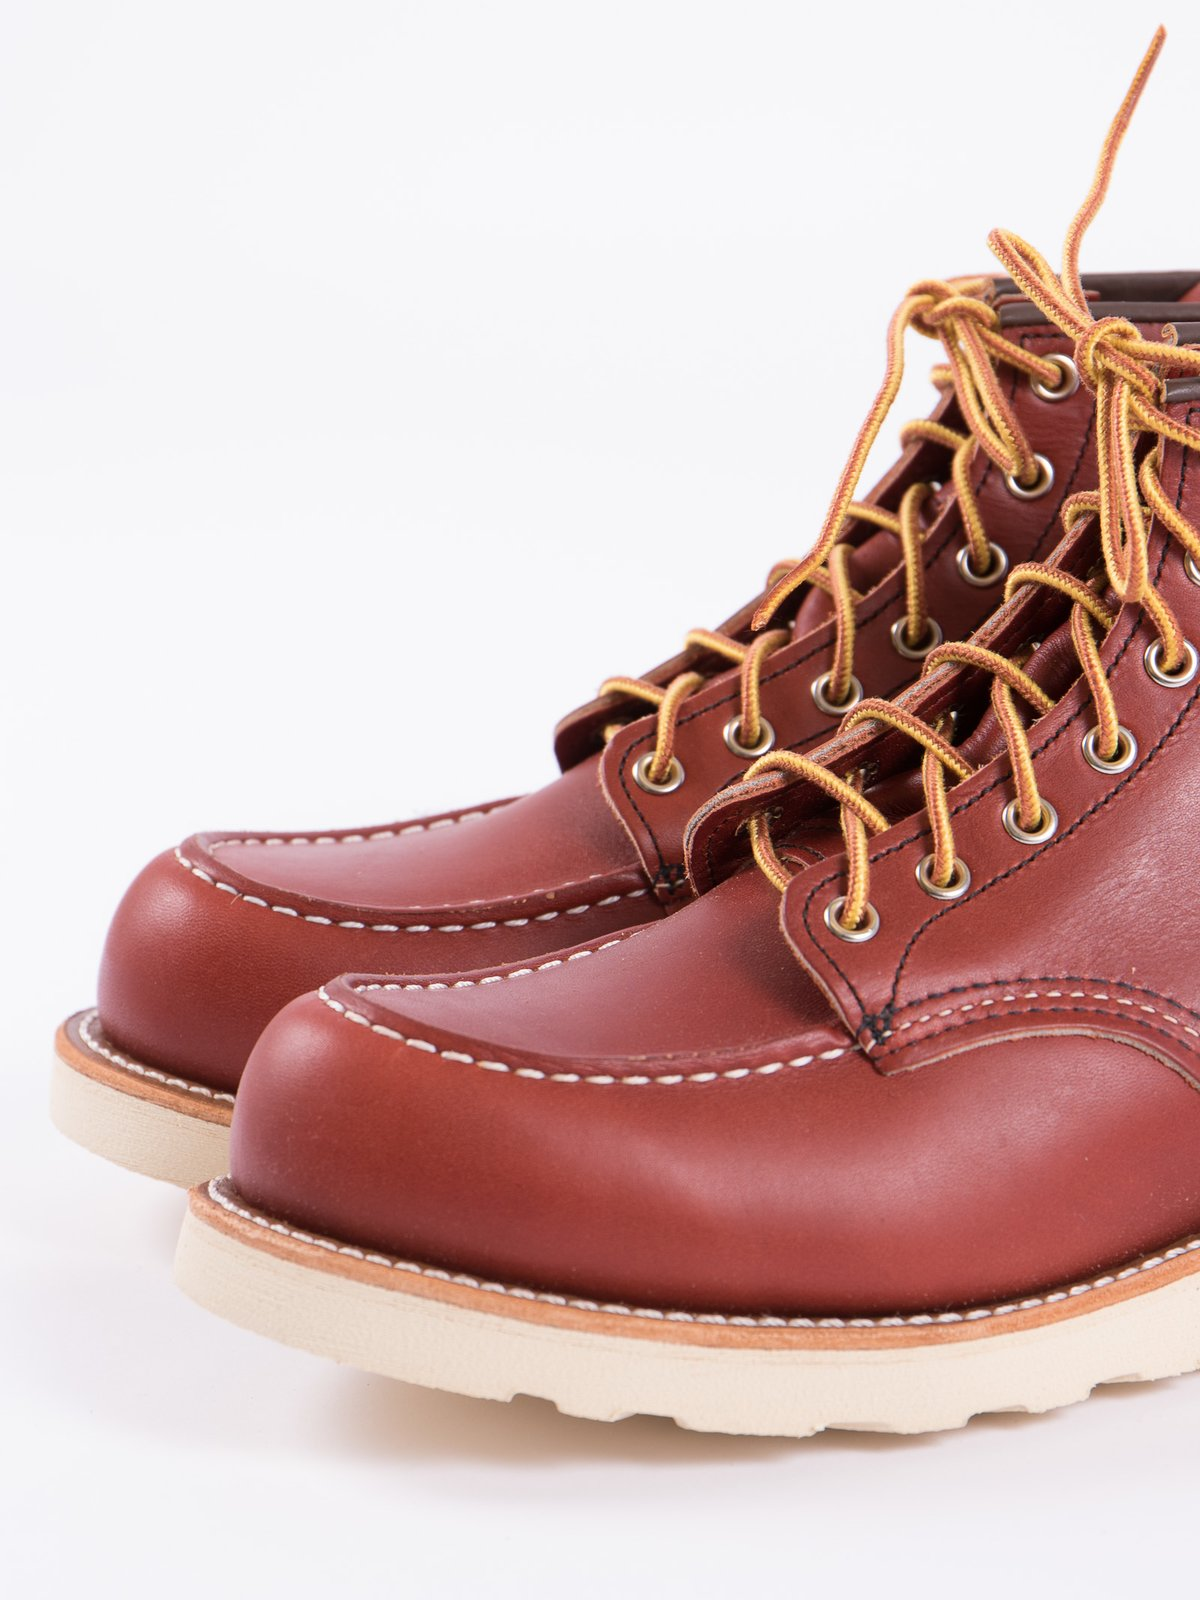 "ORO RUSSET PORTAGE 8131 HERITAGE 6"" MOC TOE BOOT - Image 2"